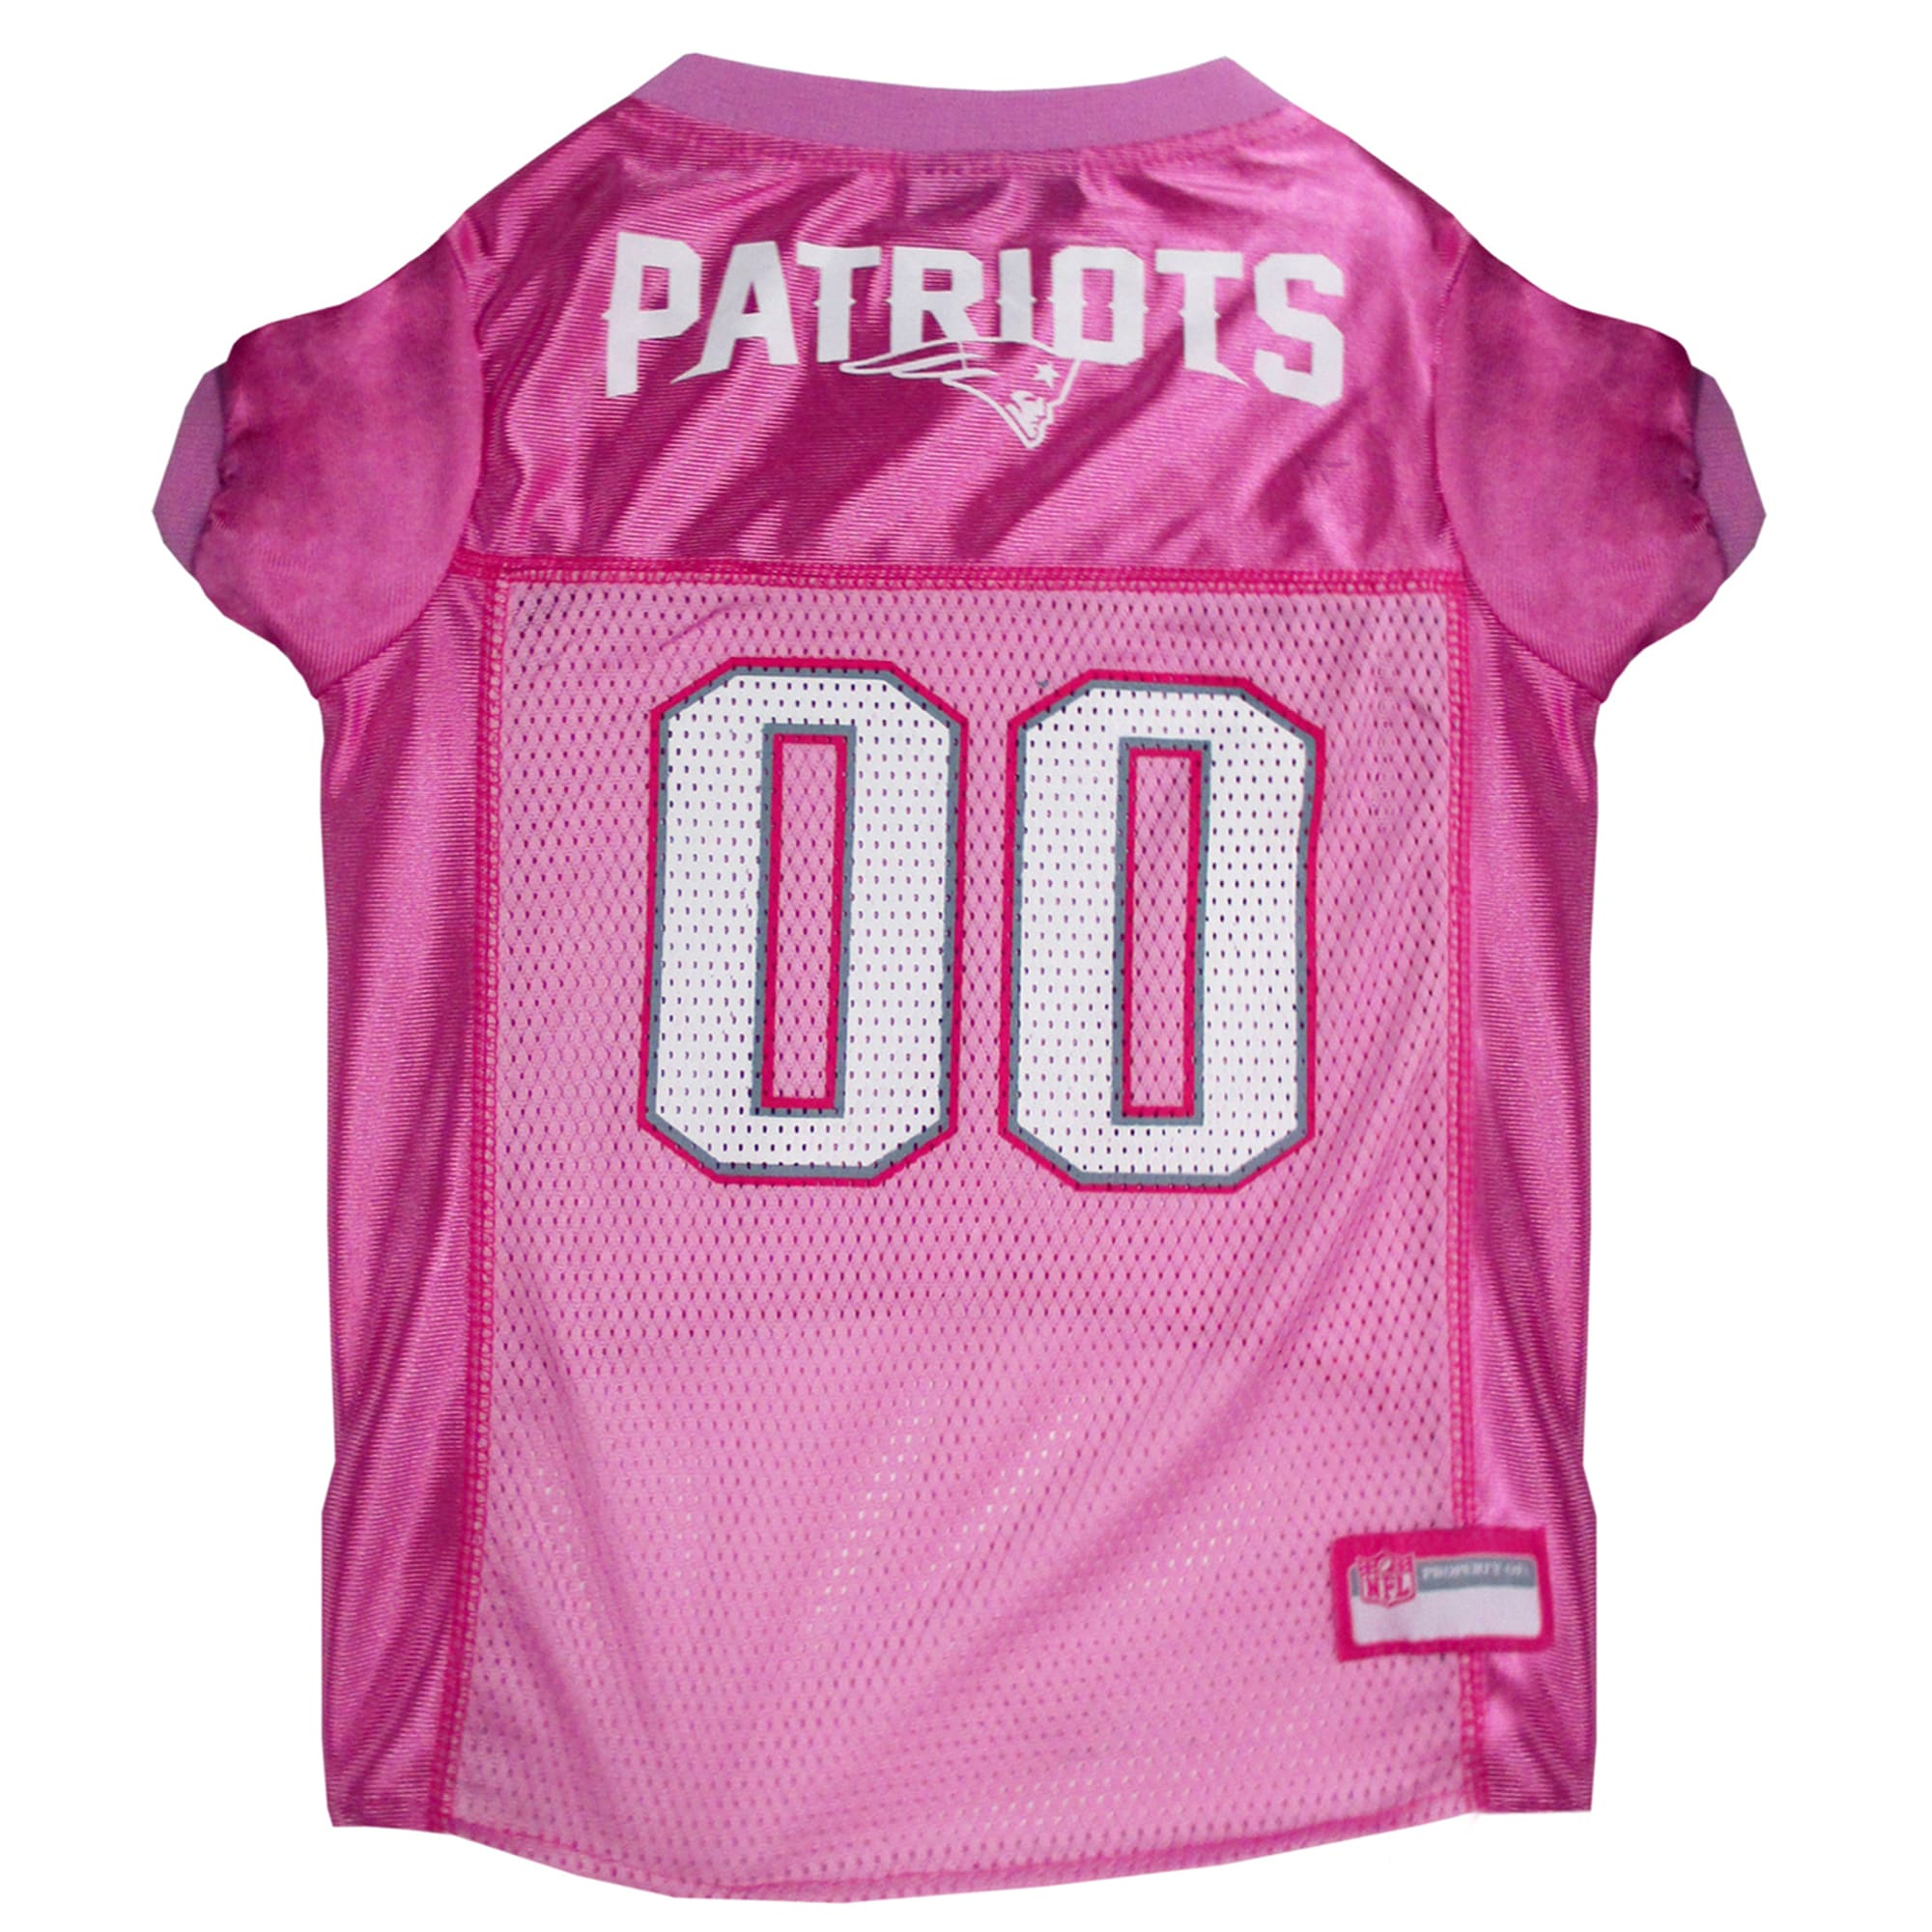 Pets First New England Patriots NFL Pink Mesh Jersey, X-Small